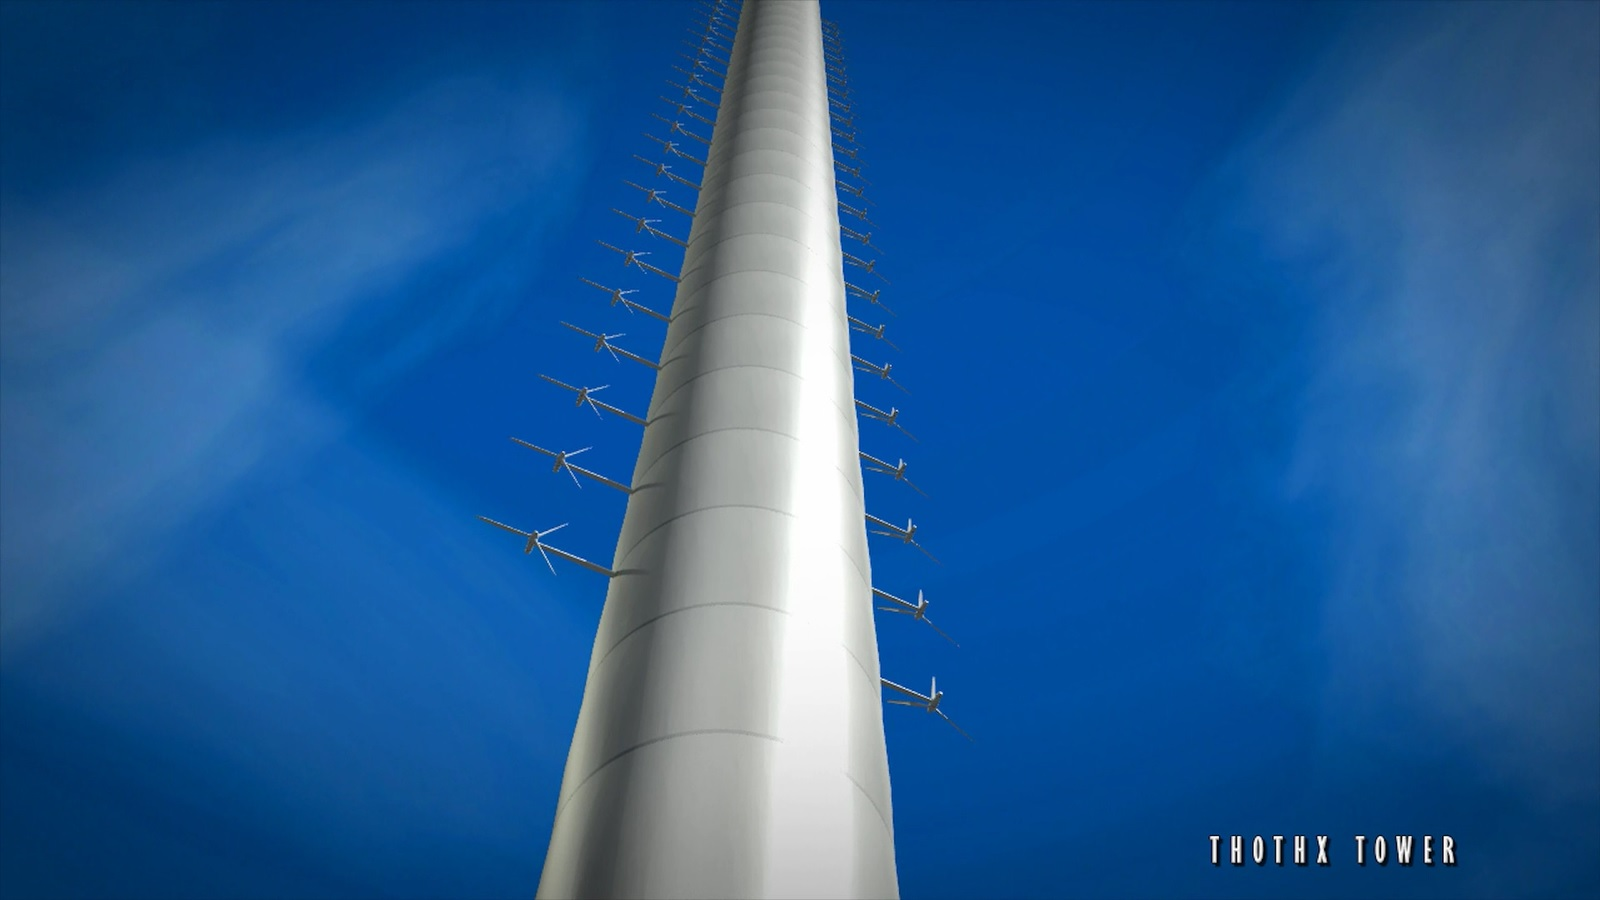 thothx_tower_turbines1